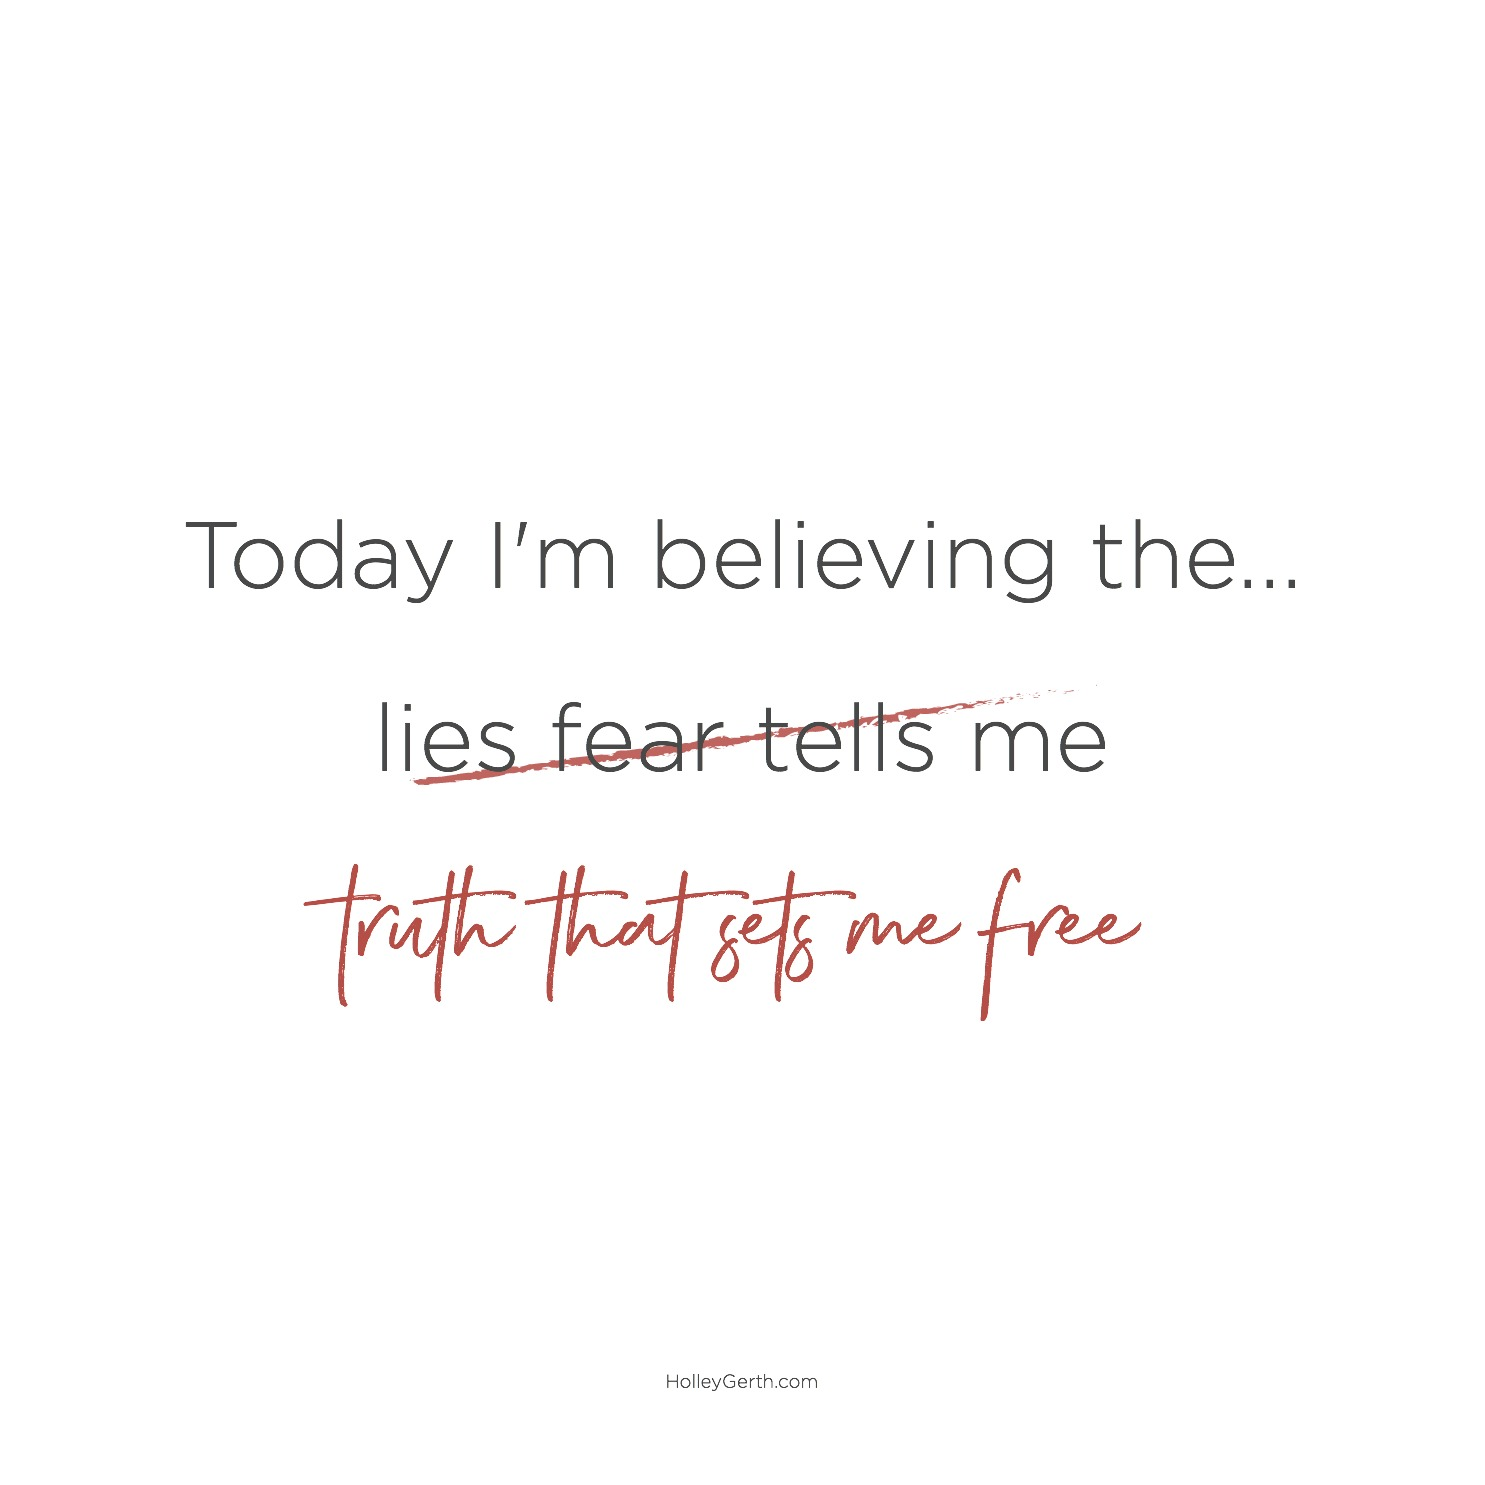 Today I'm believing the truth that sets me free.